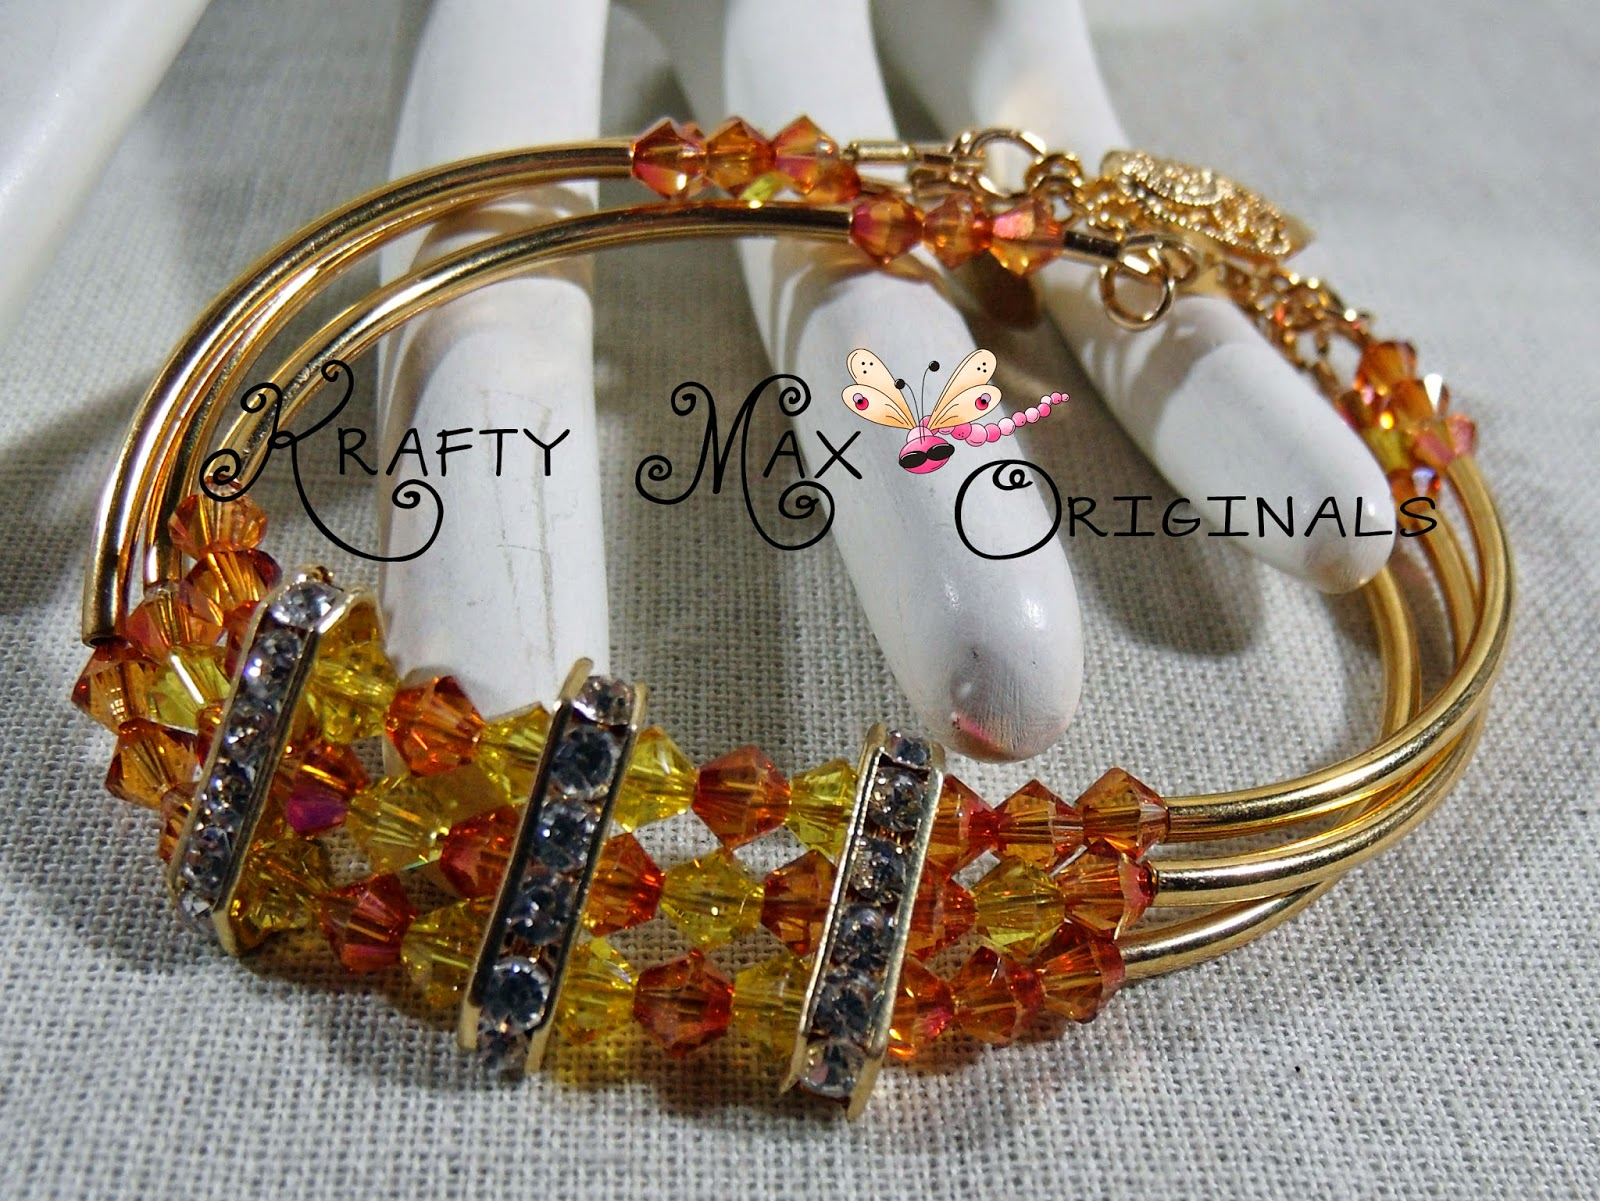 http://www.lajuliet.com/index.php/2013-01-04-15-21-51/ad/beaded,49/exclusive-golden-glow-swarovski-crystal-and-gold-plated-triple-strand-bracelet-a-krafty-max-original-design,343